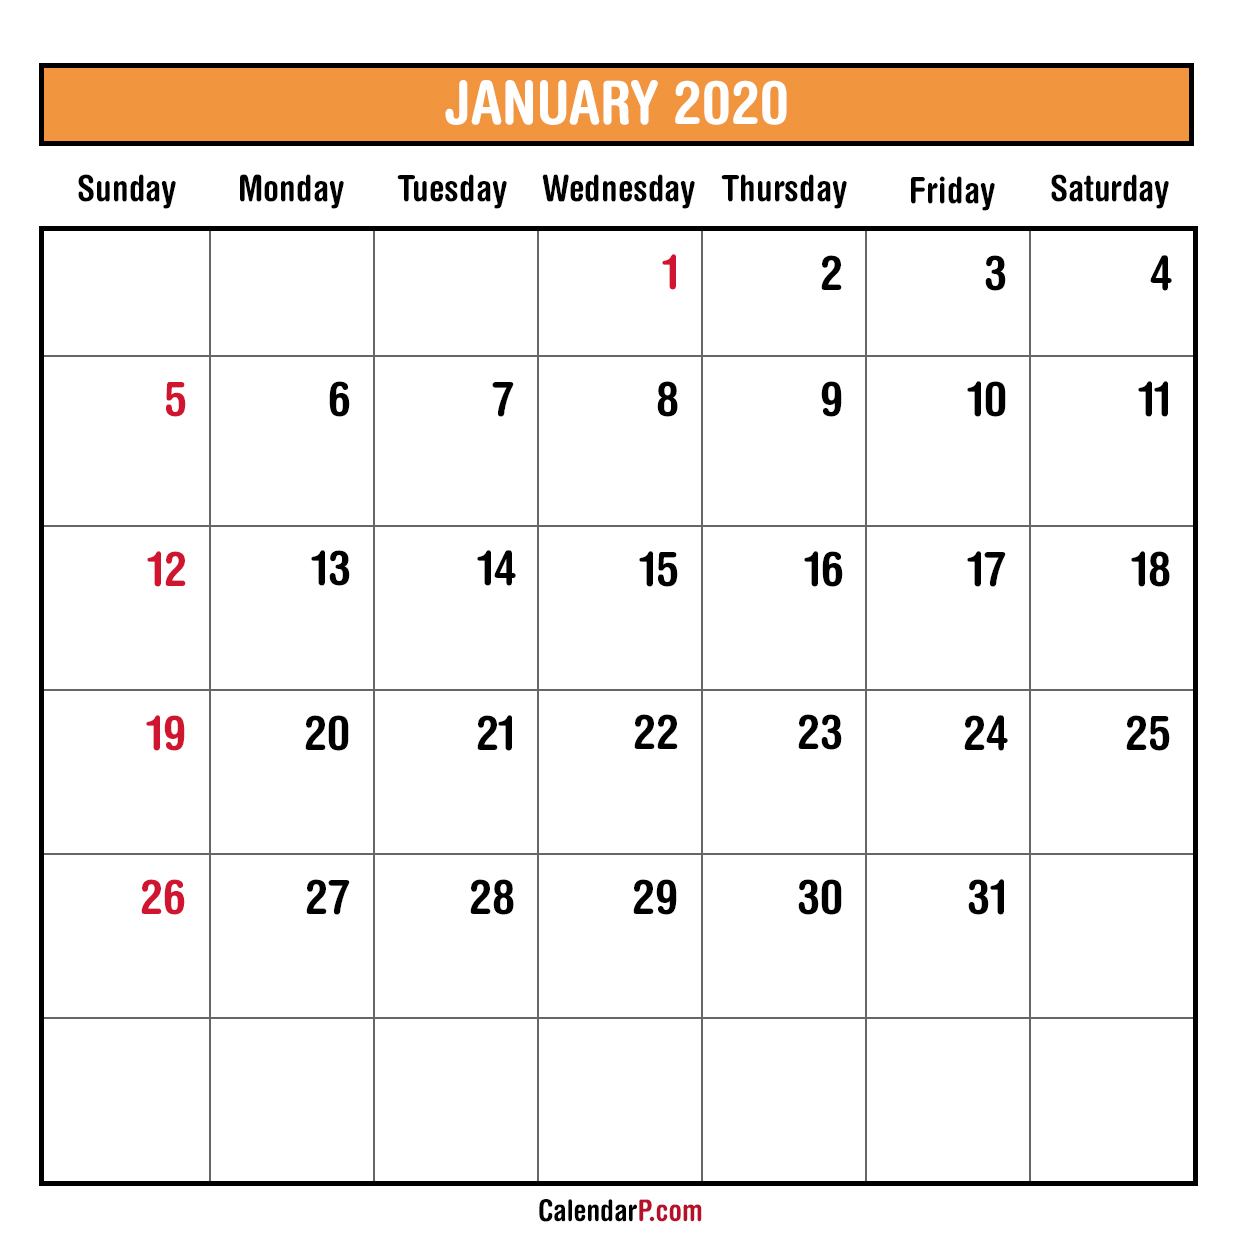 photograph relating to Printable Monthly Calendars Free named 2020 Every month Planner Printable Cost-free Sunday Start off, Orange